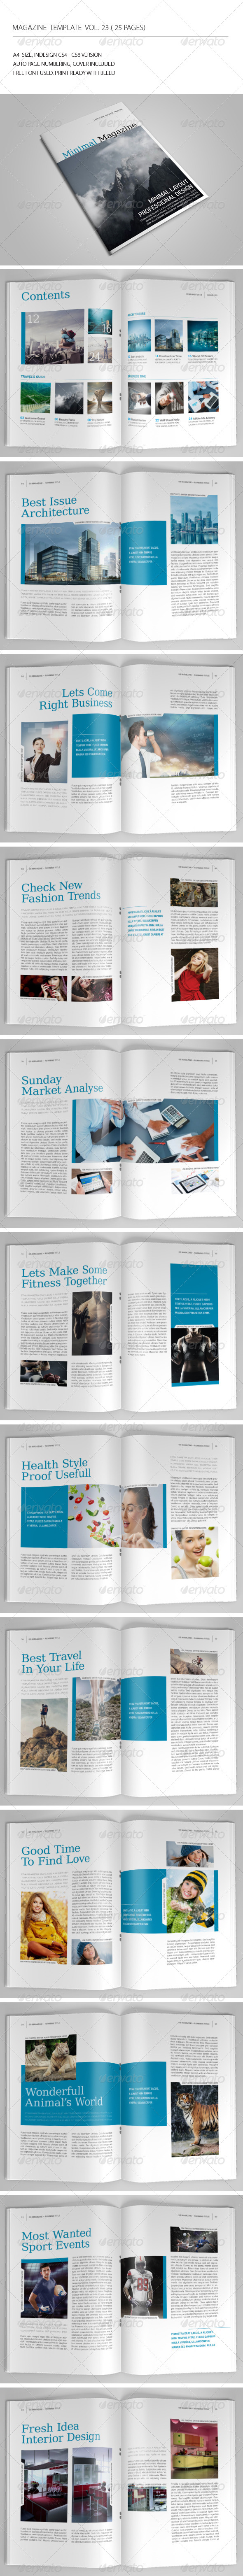 GraphicRiver 25 Pages Minimal Magazine Vol23 7070237